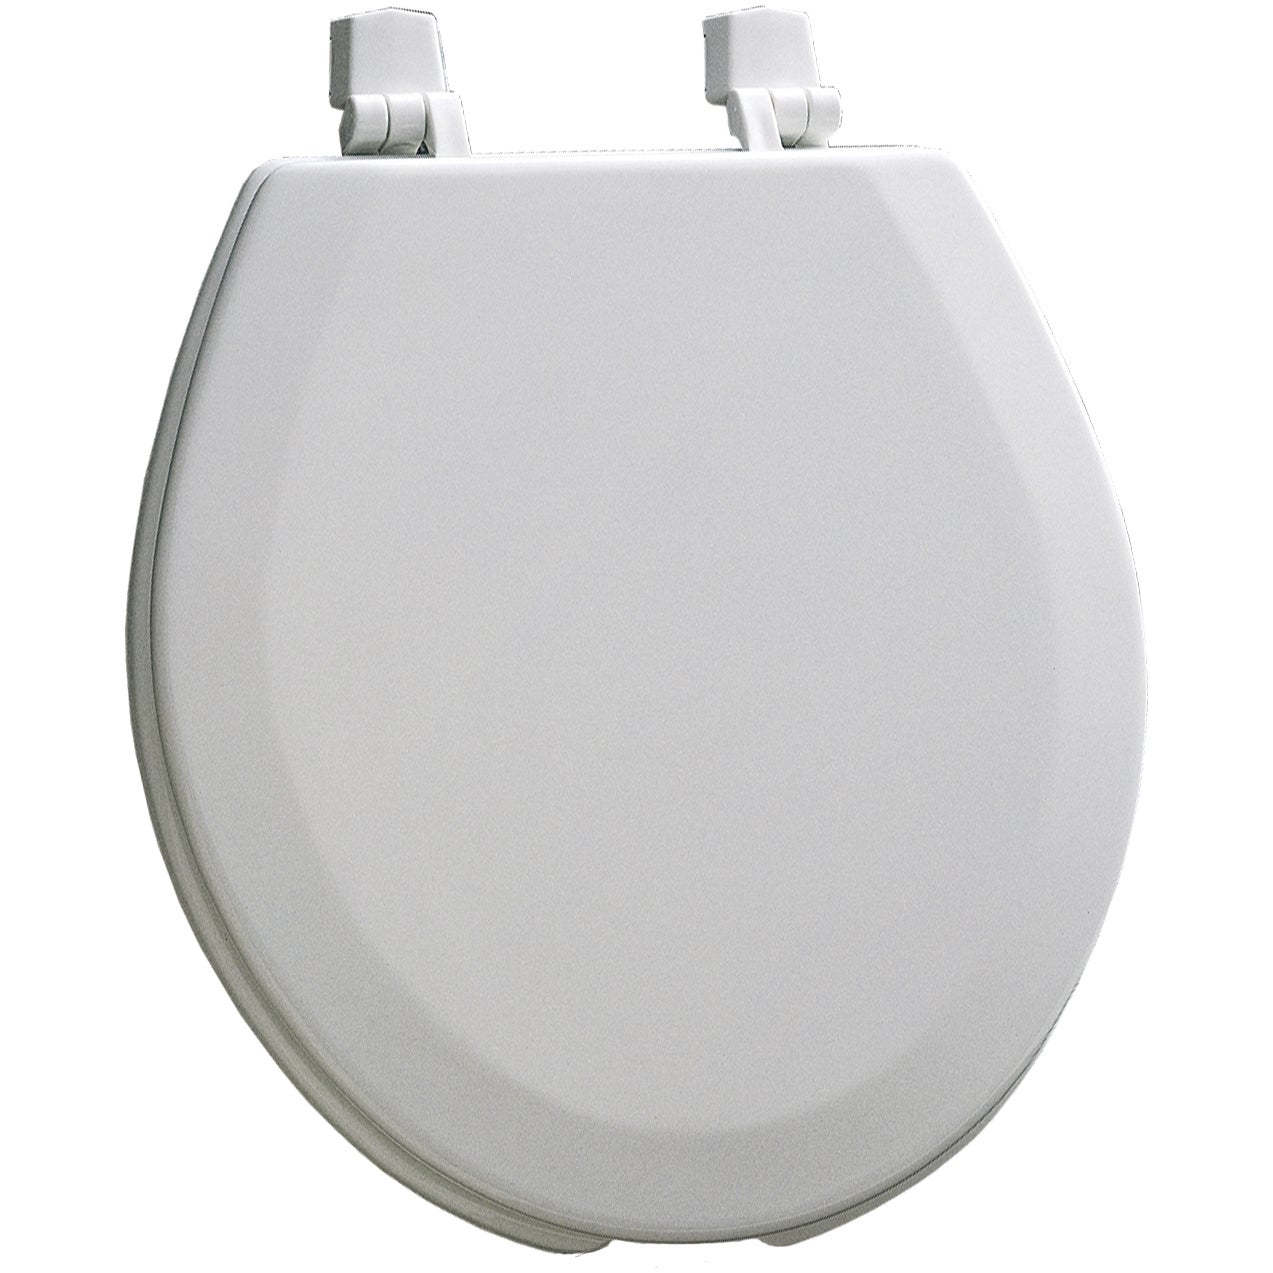 Mayfair 440-000 White Commercial Toilet Seat With Cover (...